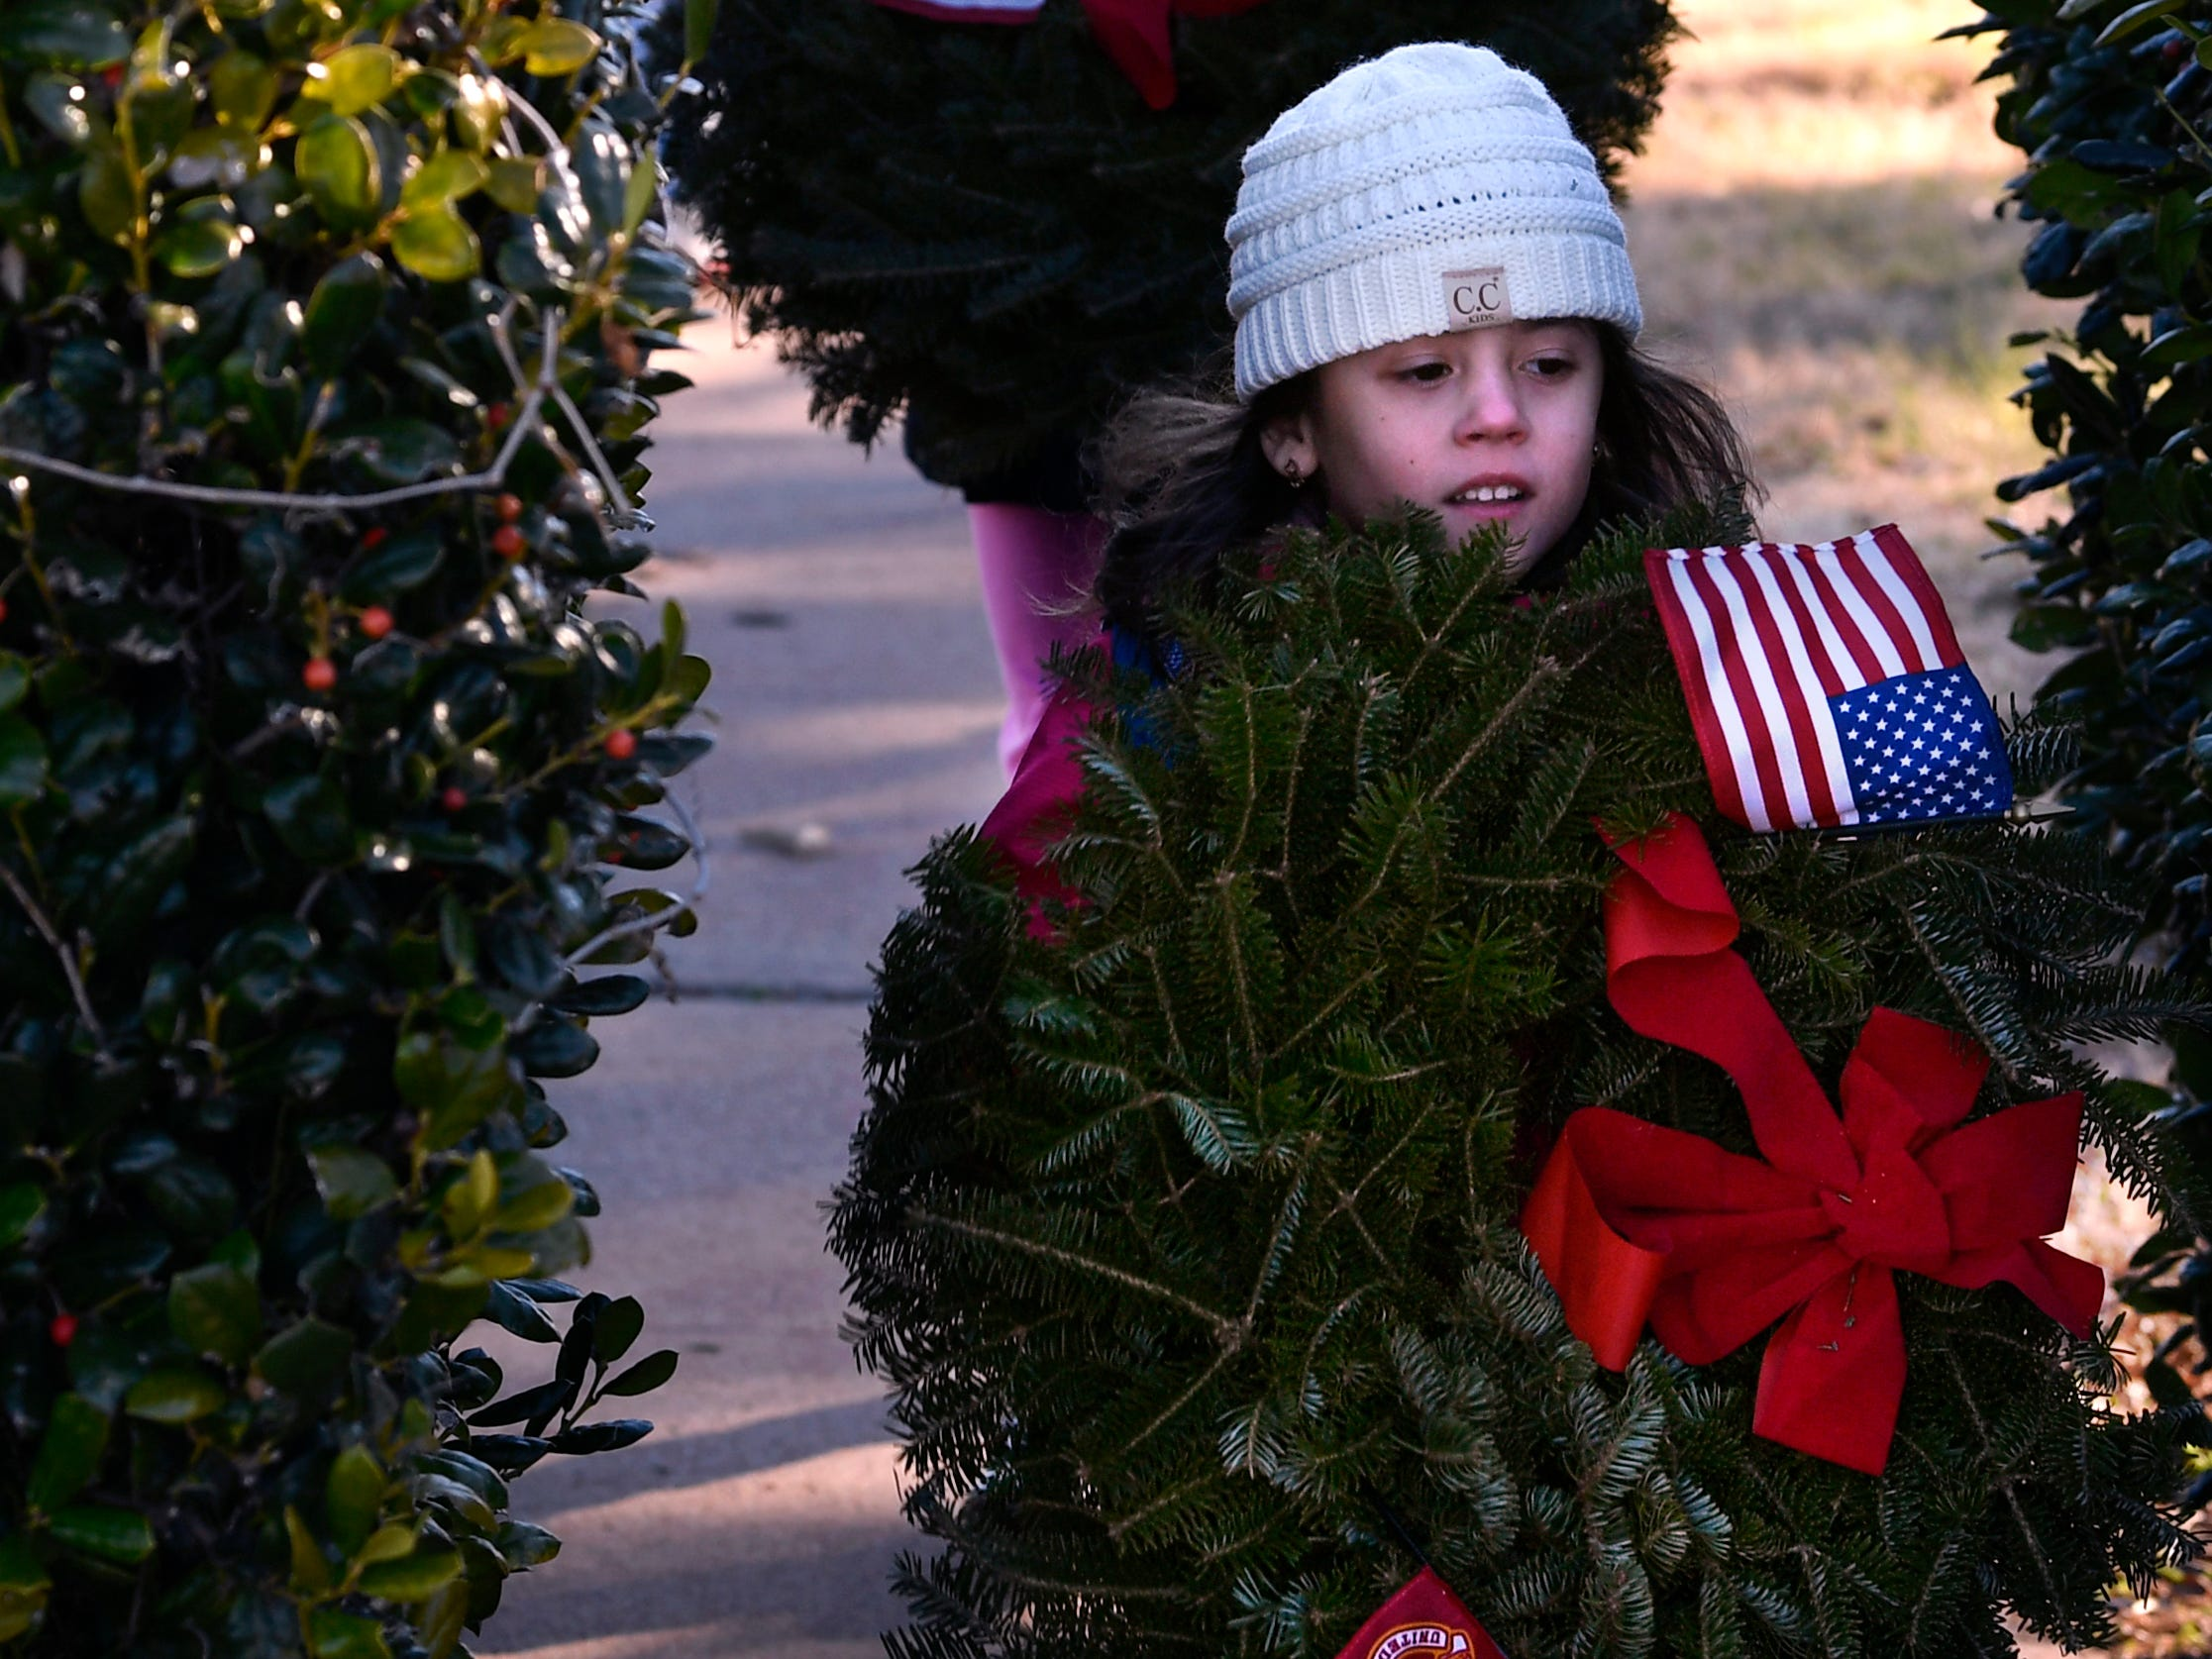 Adalynn Ferguson, 5, carries a wreath for deceased U.S. Marine veterans as Emerson Mills, 6, follows her with the Coast Guard wreath Saturday Dec. 15, 2018. The girls are members of Girl Scout Troop 7001 who placed wreaths for each branch of the service in the veterans section of Elmwood Memorial Park. Wreaths Across America is a program that provided holiday wreaths at veterans' graves. Volunteers placed wreaths at Elmwood Memorial Park and at Texas State Veterans Cemetery at Abilene. Wreaths were also collected at Elmwood to be distributed in Big Country cemeteries.